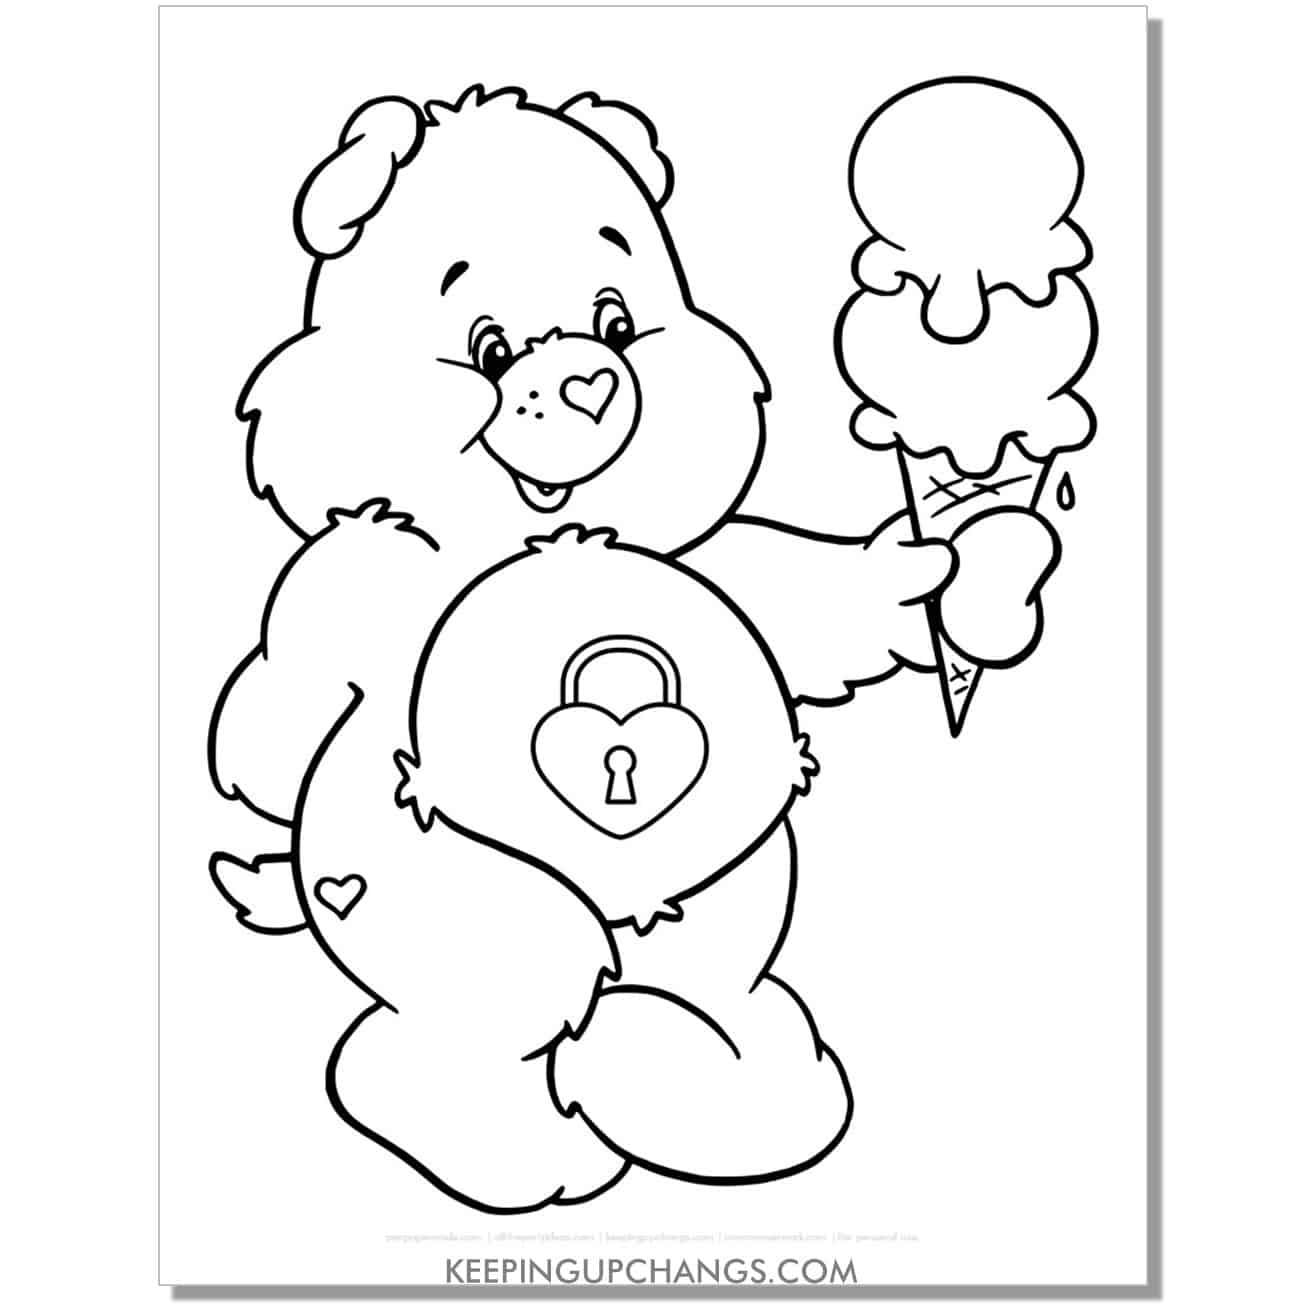 secret care bear eating ice cream coloring page.